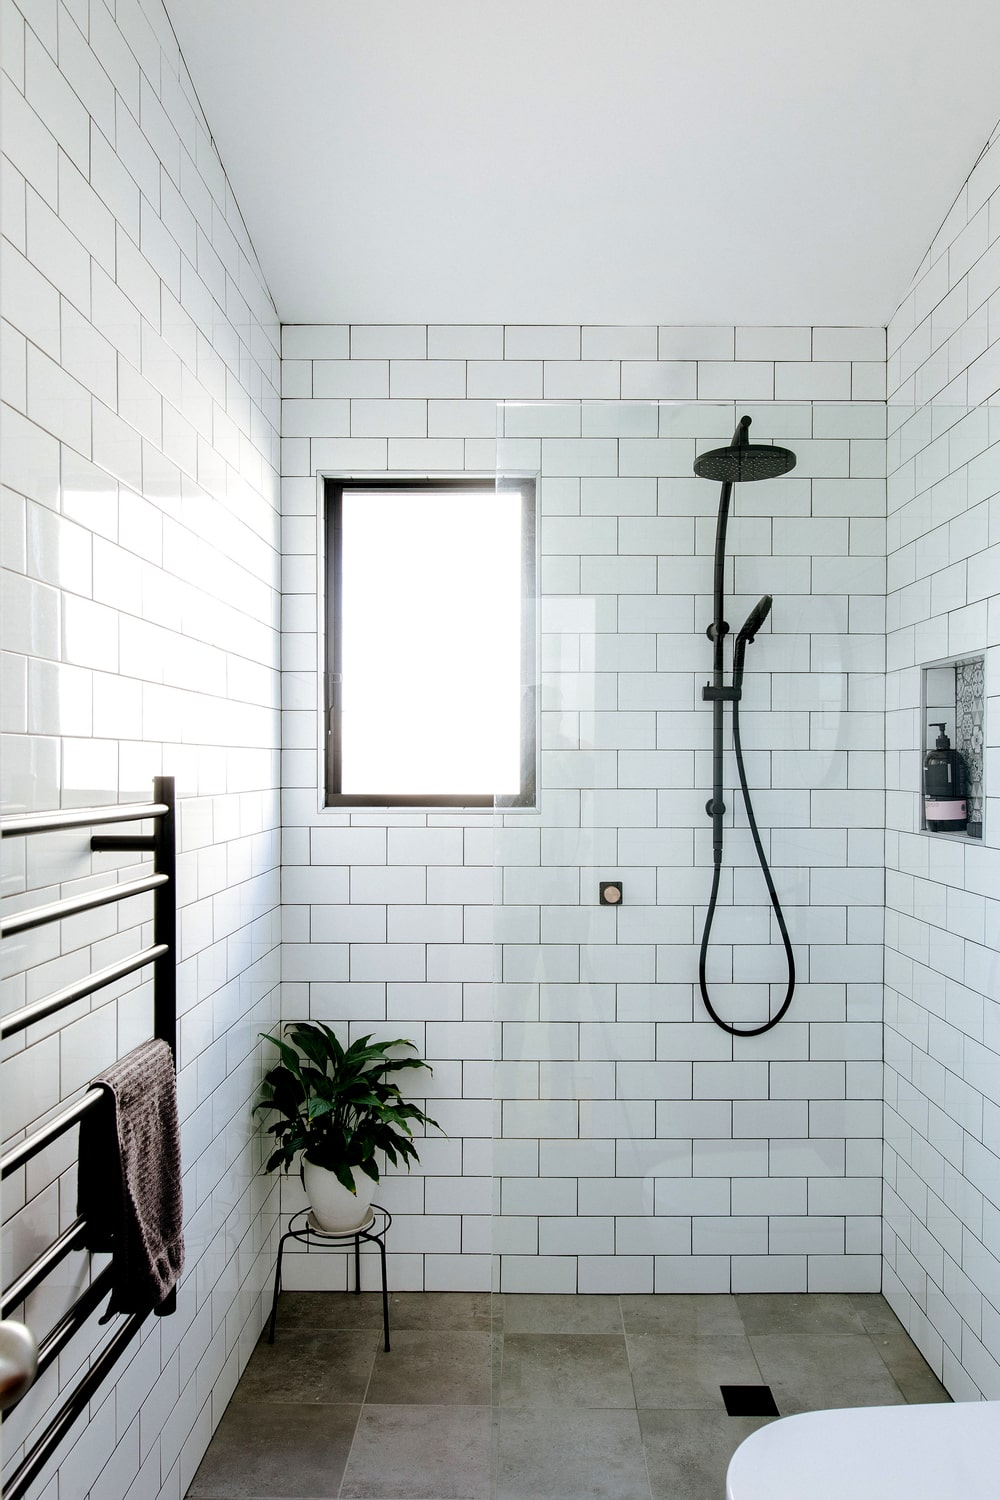 This other bathroom has a glass-enclosed shower area. It has white subway tiles on its walls that contrast well with the black fixtures of the bathroom.